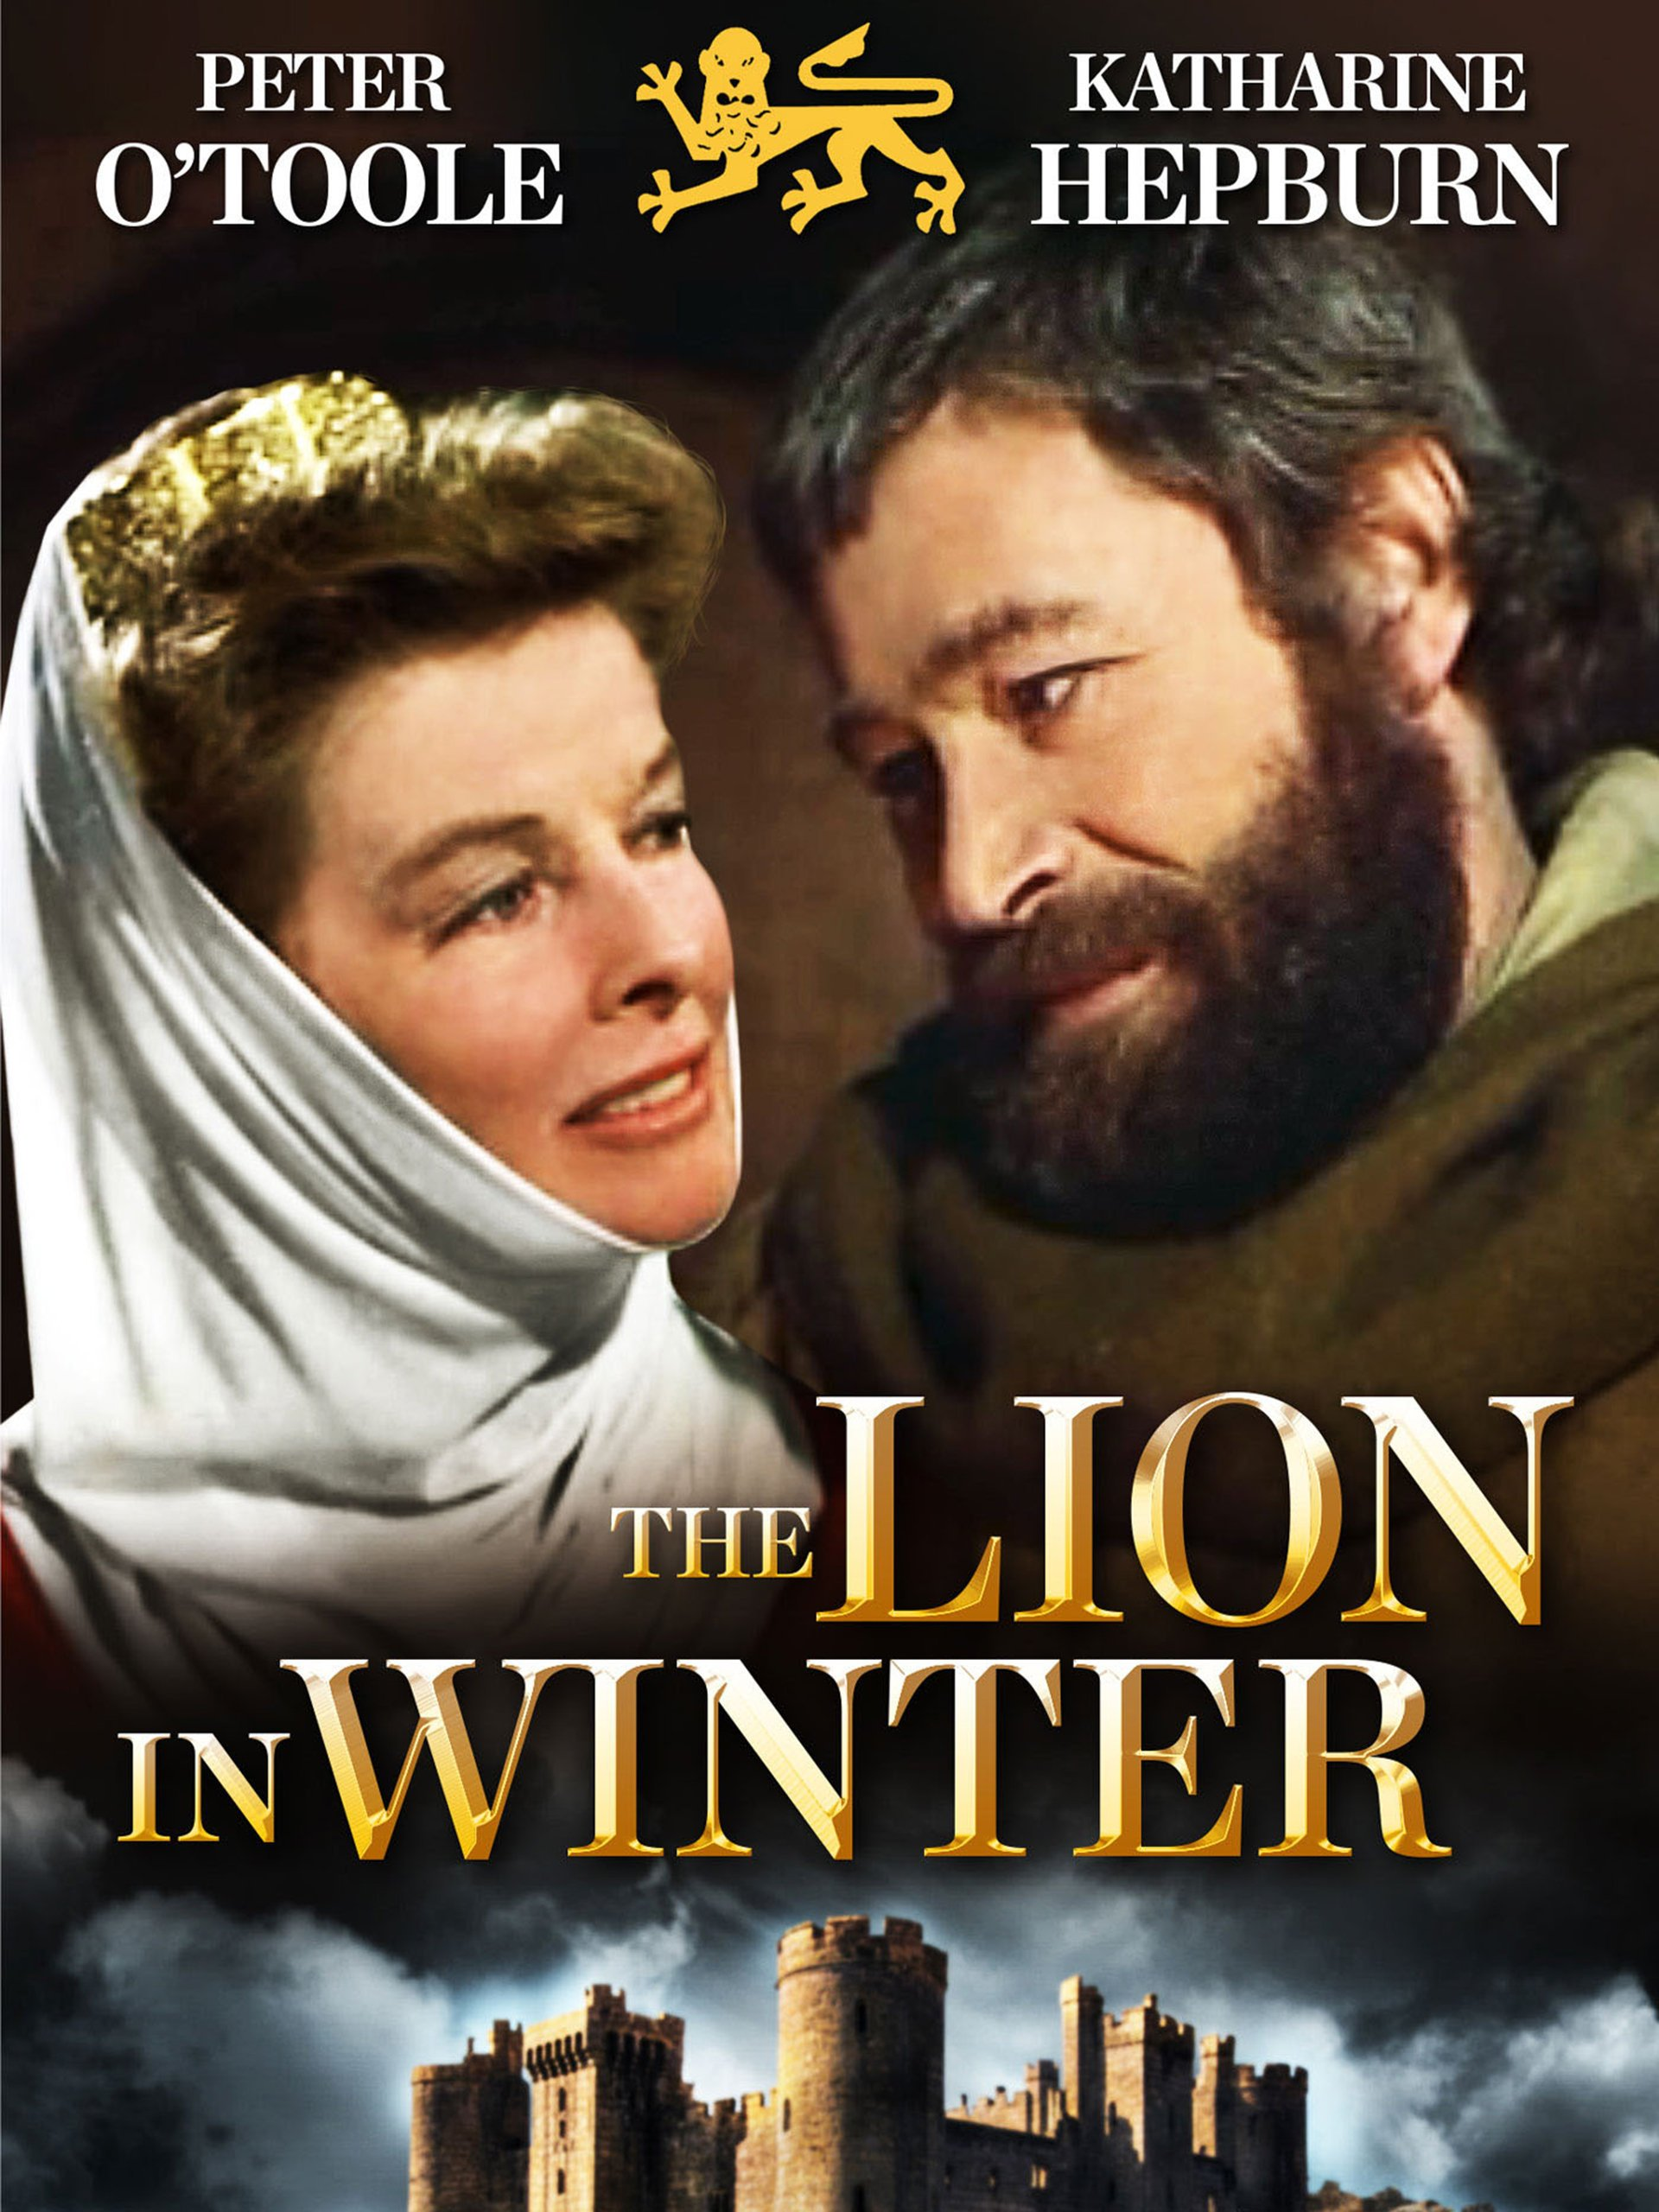 Amazon.com: Watch The Lion in Winter (1968) | Prime Video